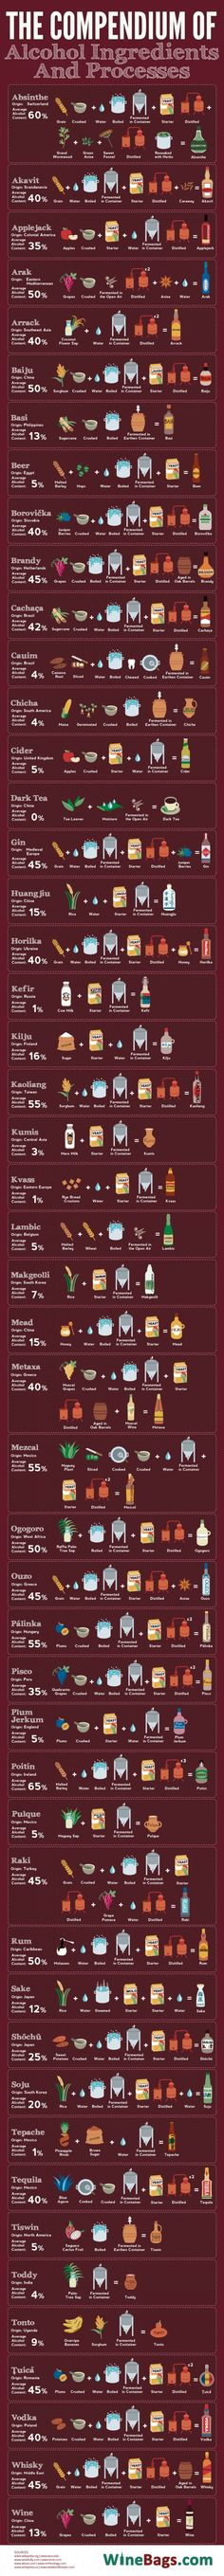 How the most popular alcoholic drinks around the world are made. http://www.amazon.co.uk/dp/B00VVJGJ2W